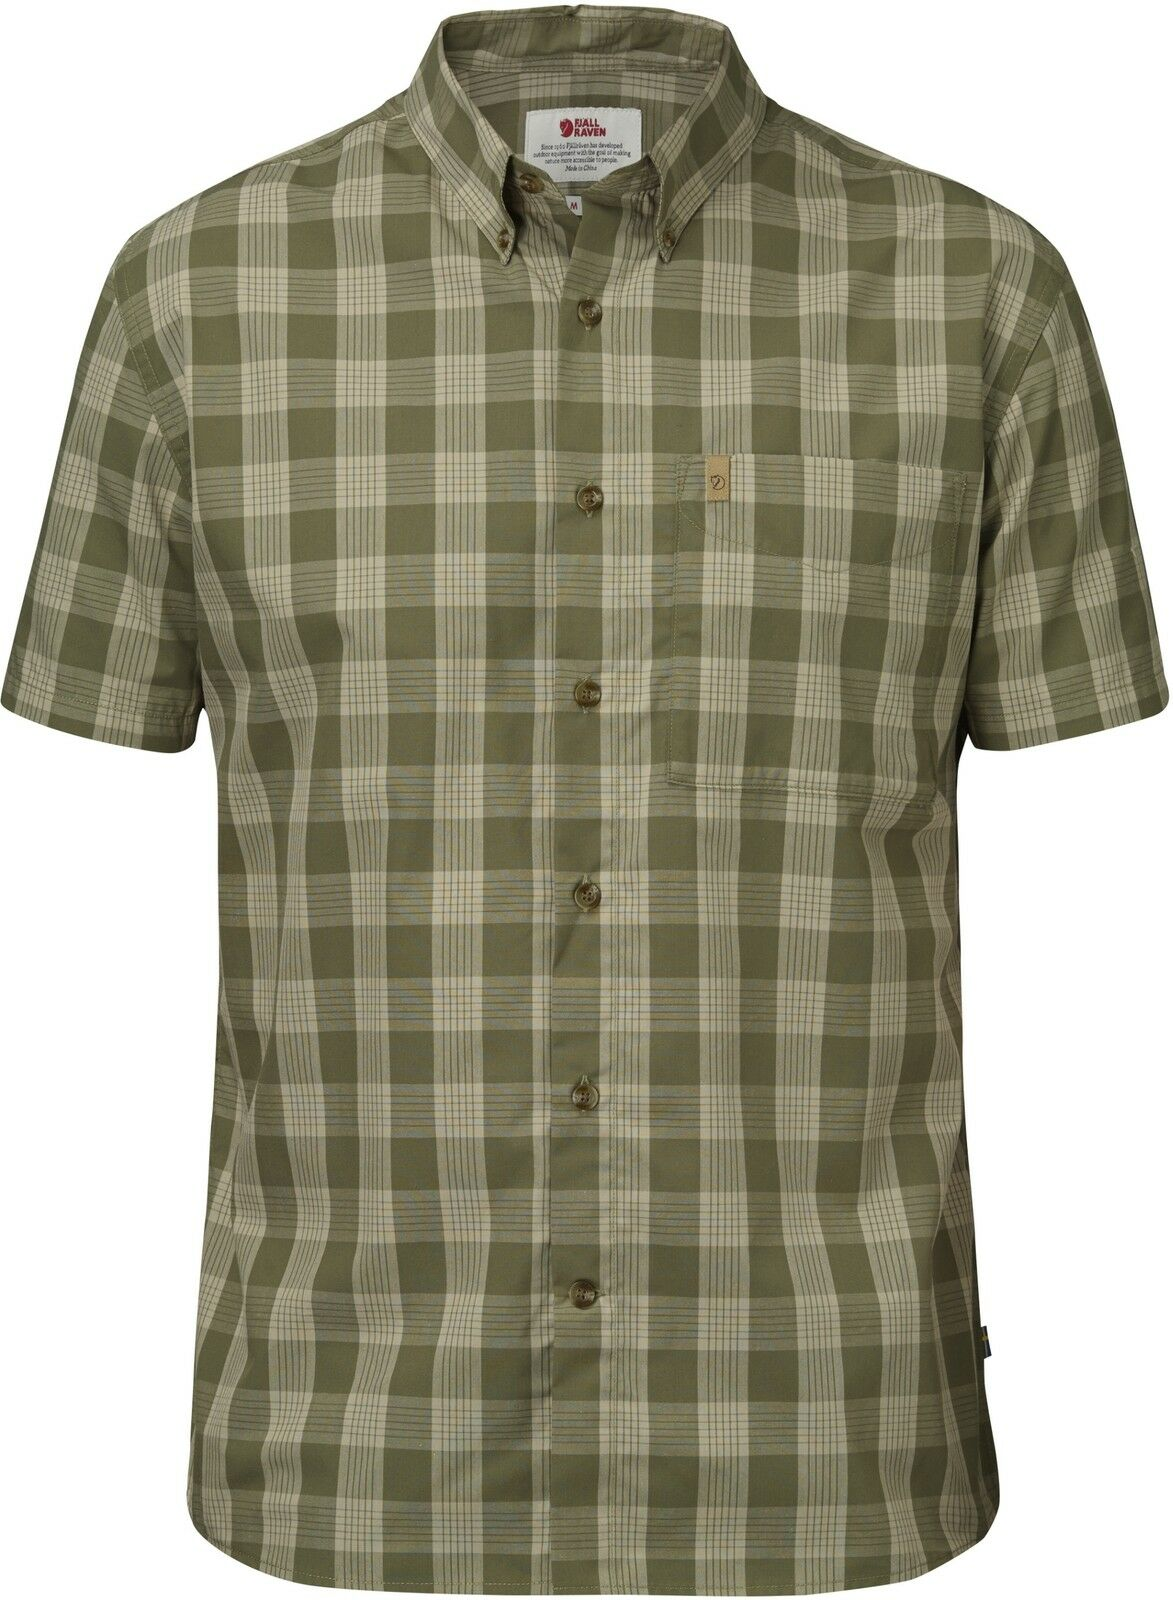 Fjällräven Övik Button Down Shirt SS 82443 Grün Herren Short Sleeve Shirt Hunting Shirt